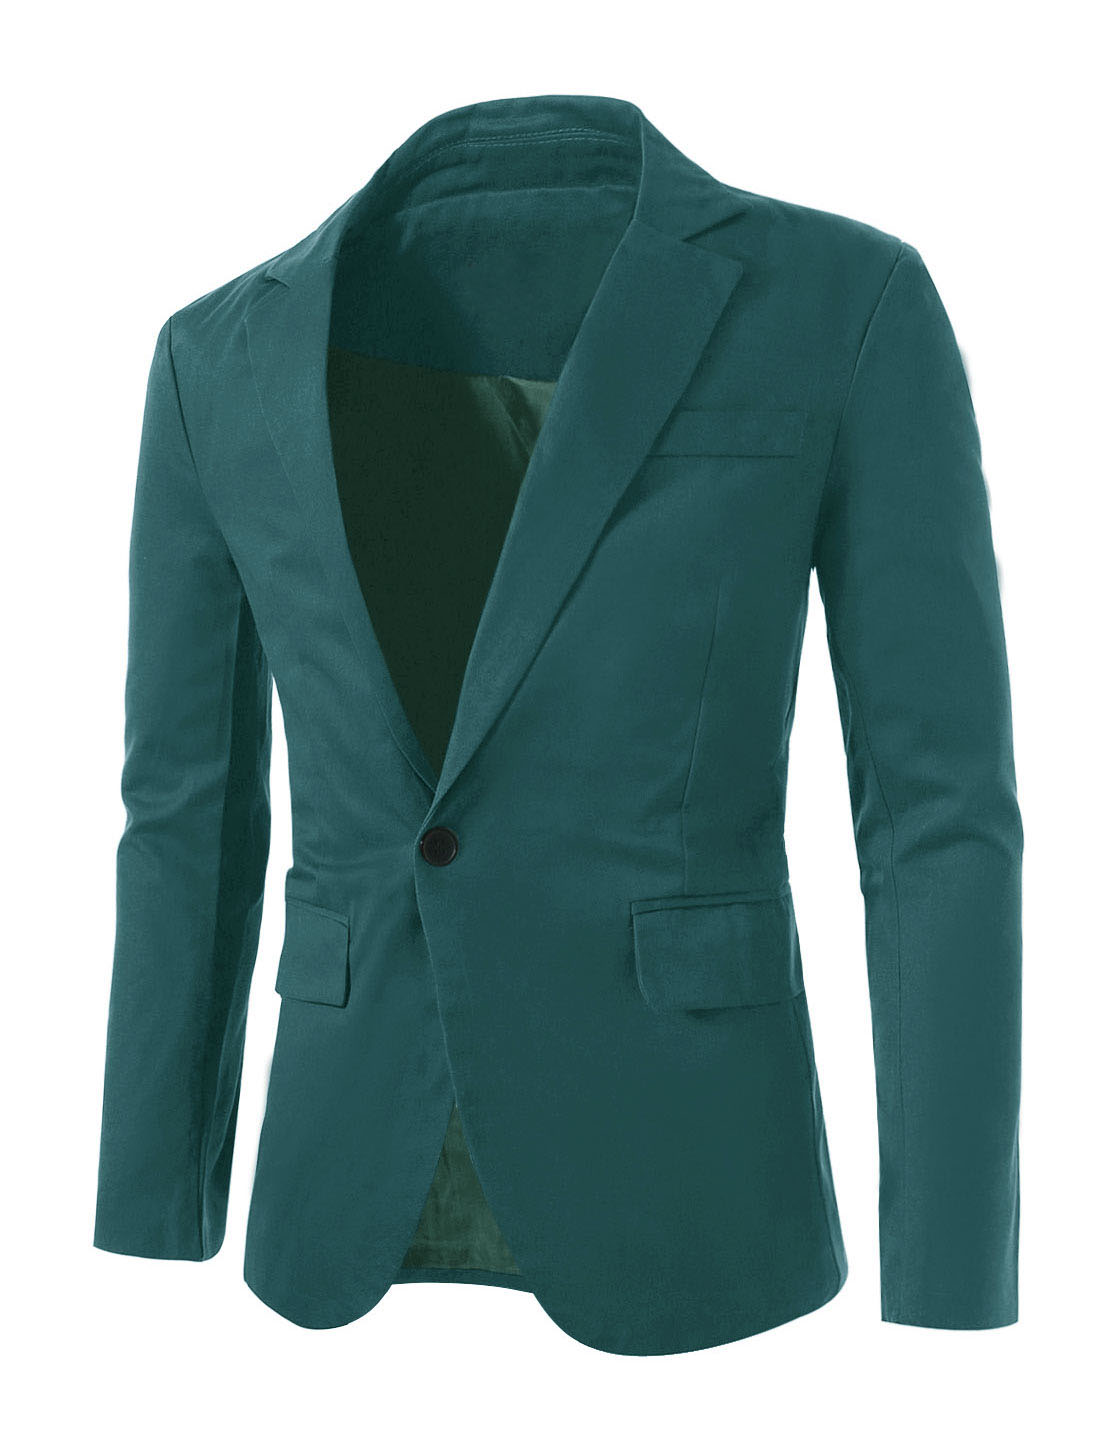 Men Notched Lapel Center-Vent Back One-Button Blazer Dark Green L